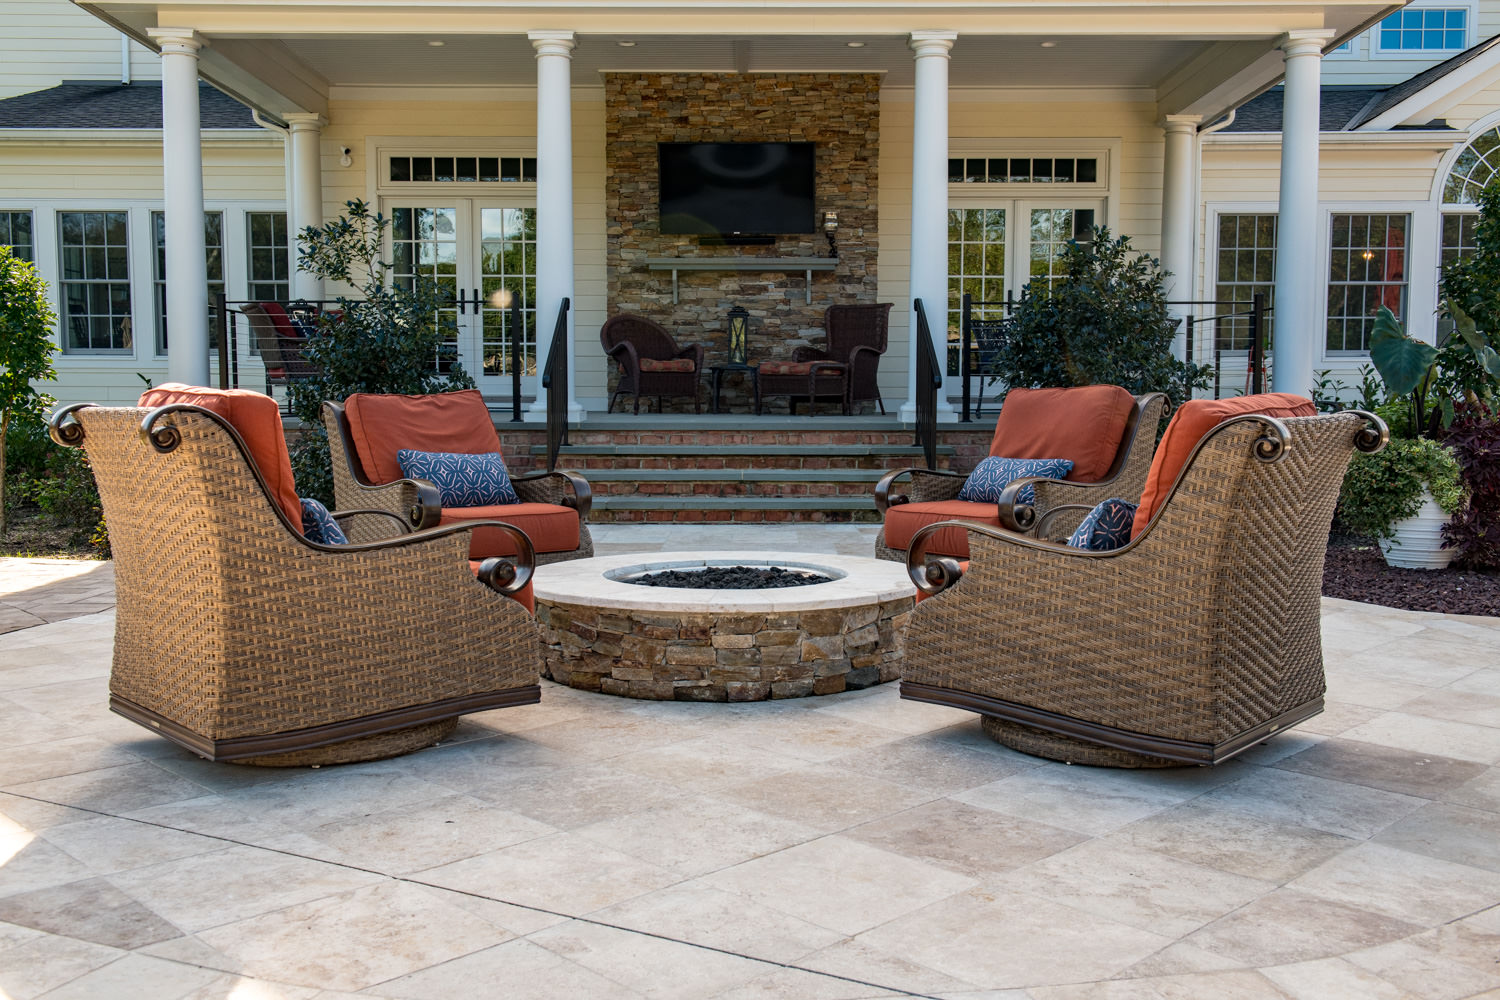 17-Custom-Pool-Design-Pennington-NJ-K-and-C-Land-Design.jpg